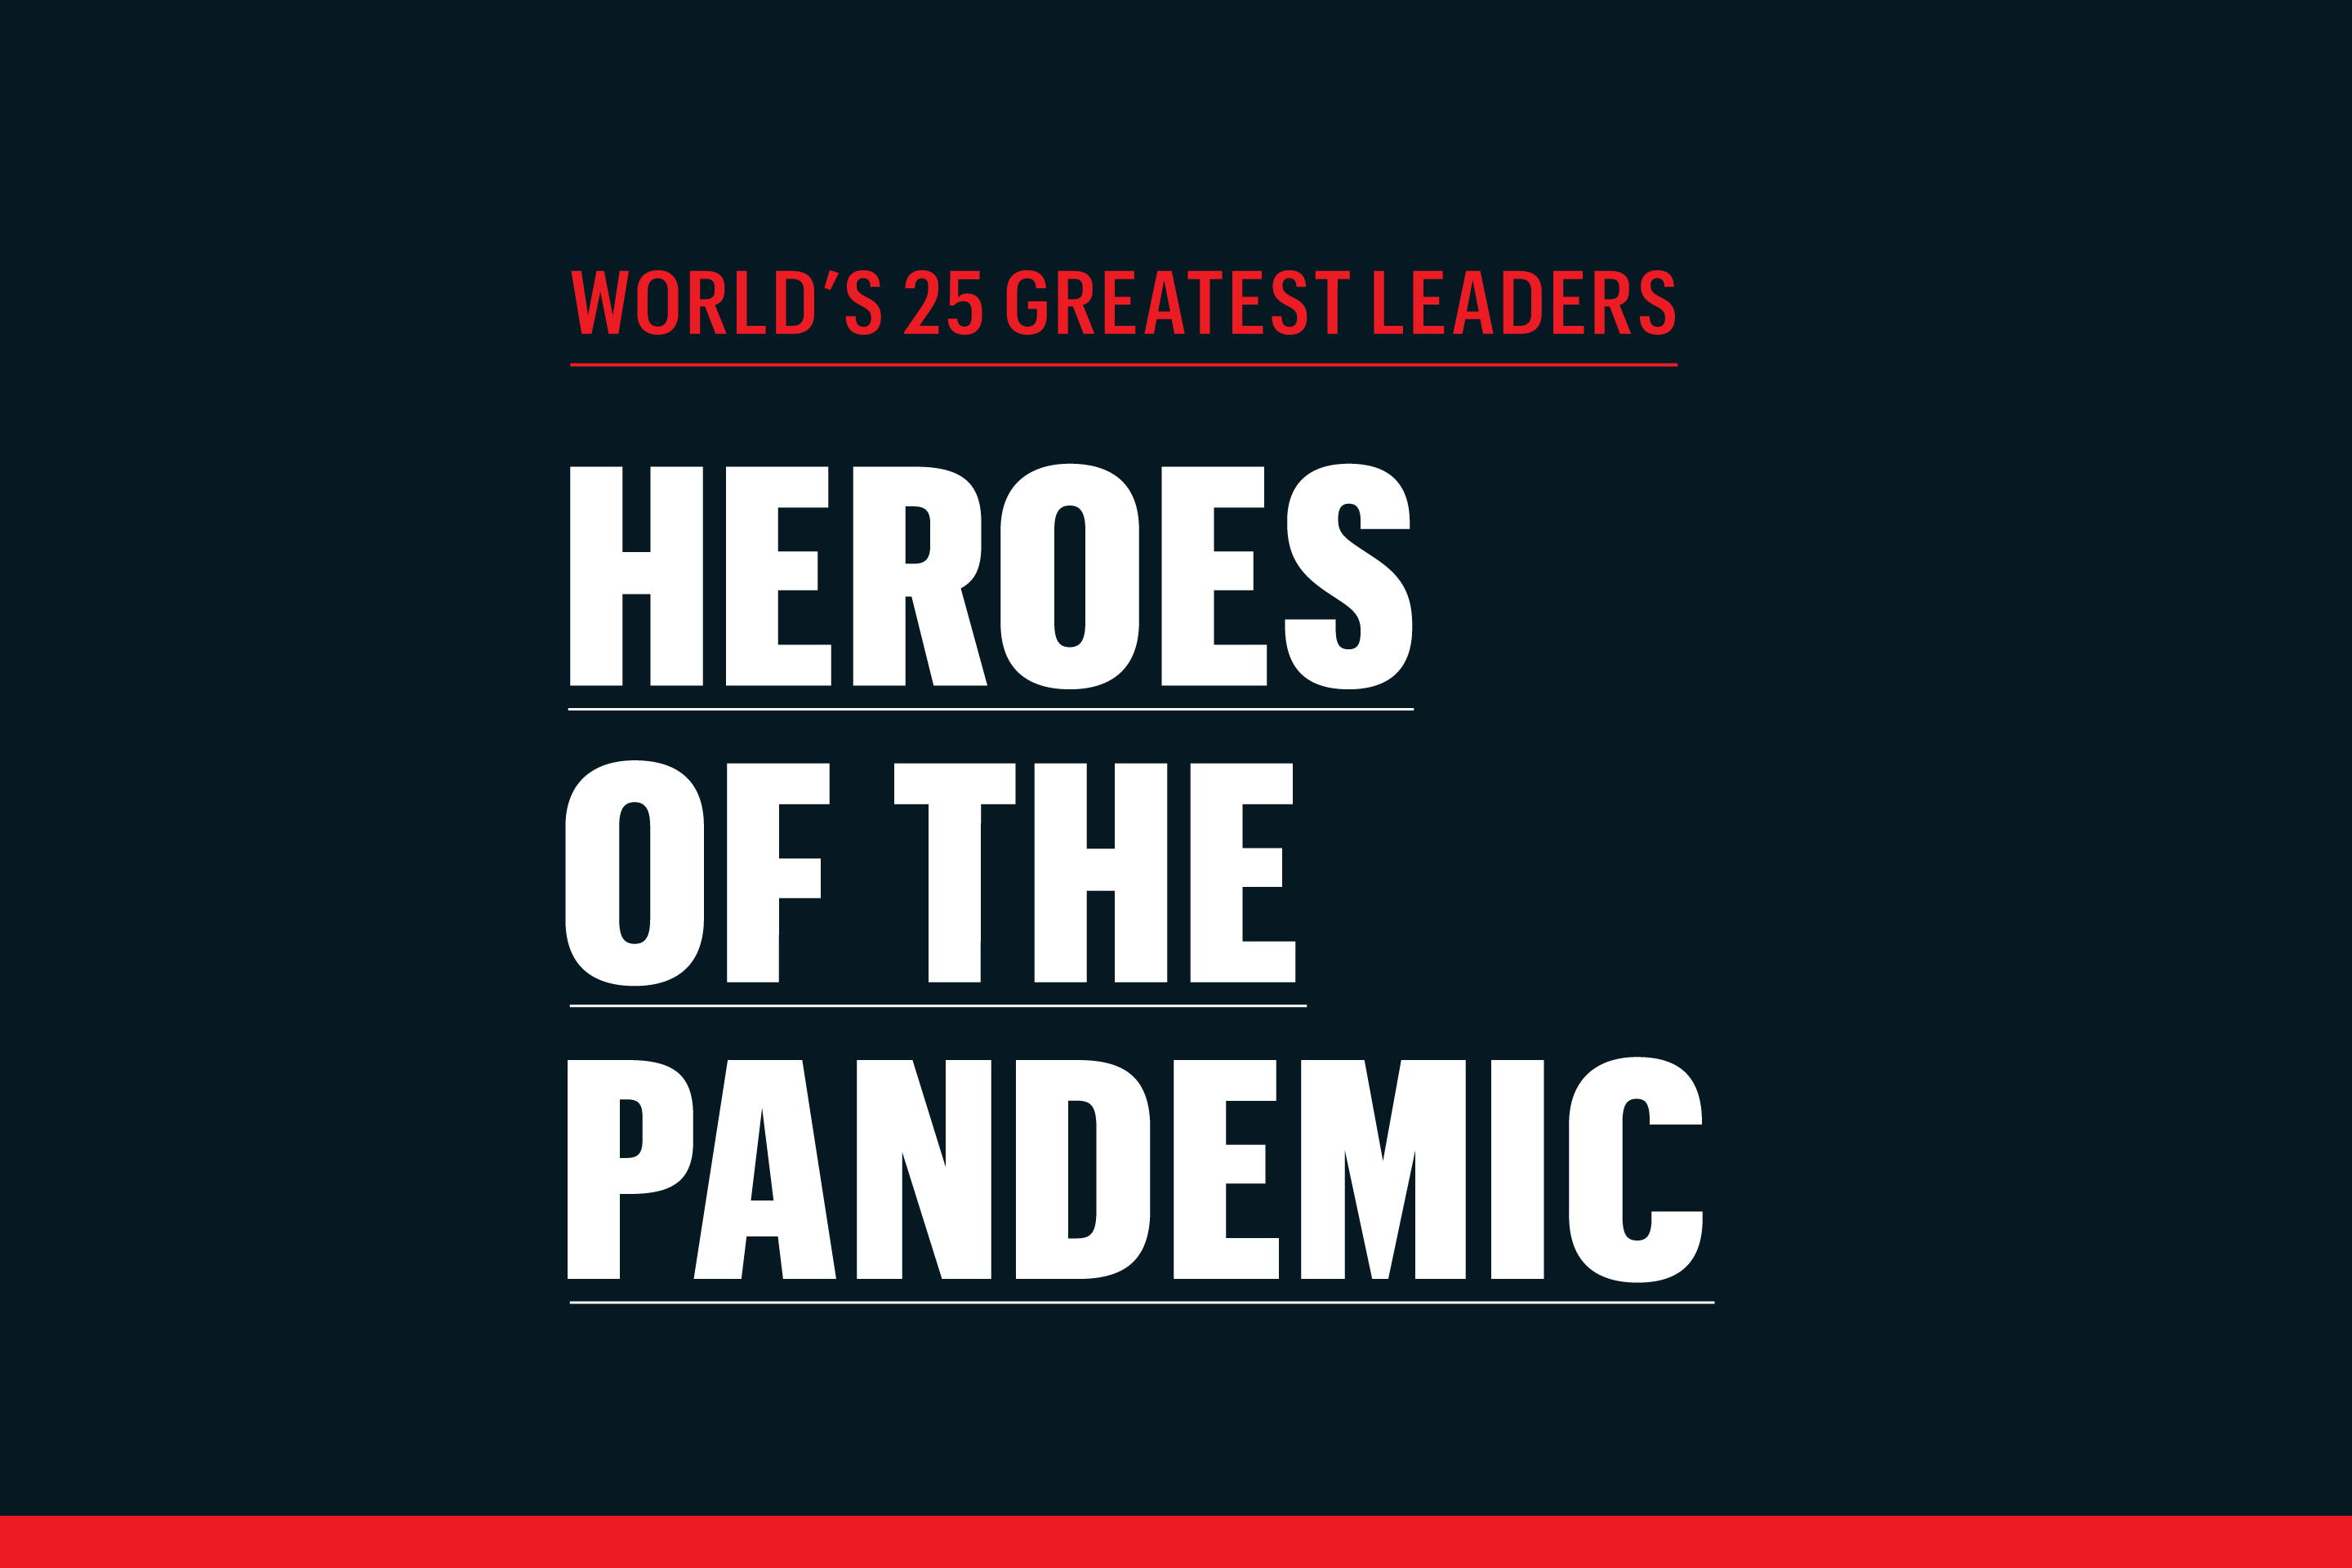 Heroes Of The Coronavirus Pandemic The World S 25 Greatest Leaders List 2020 Fortune